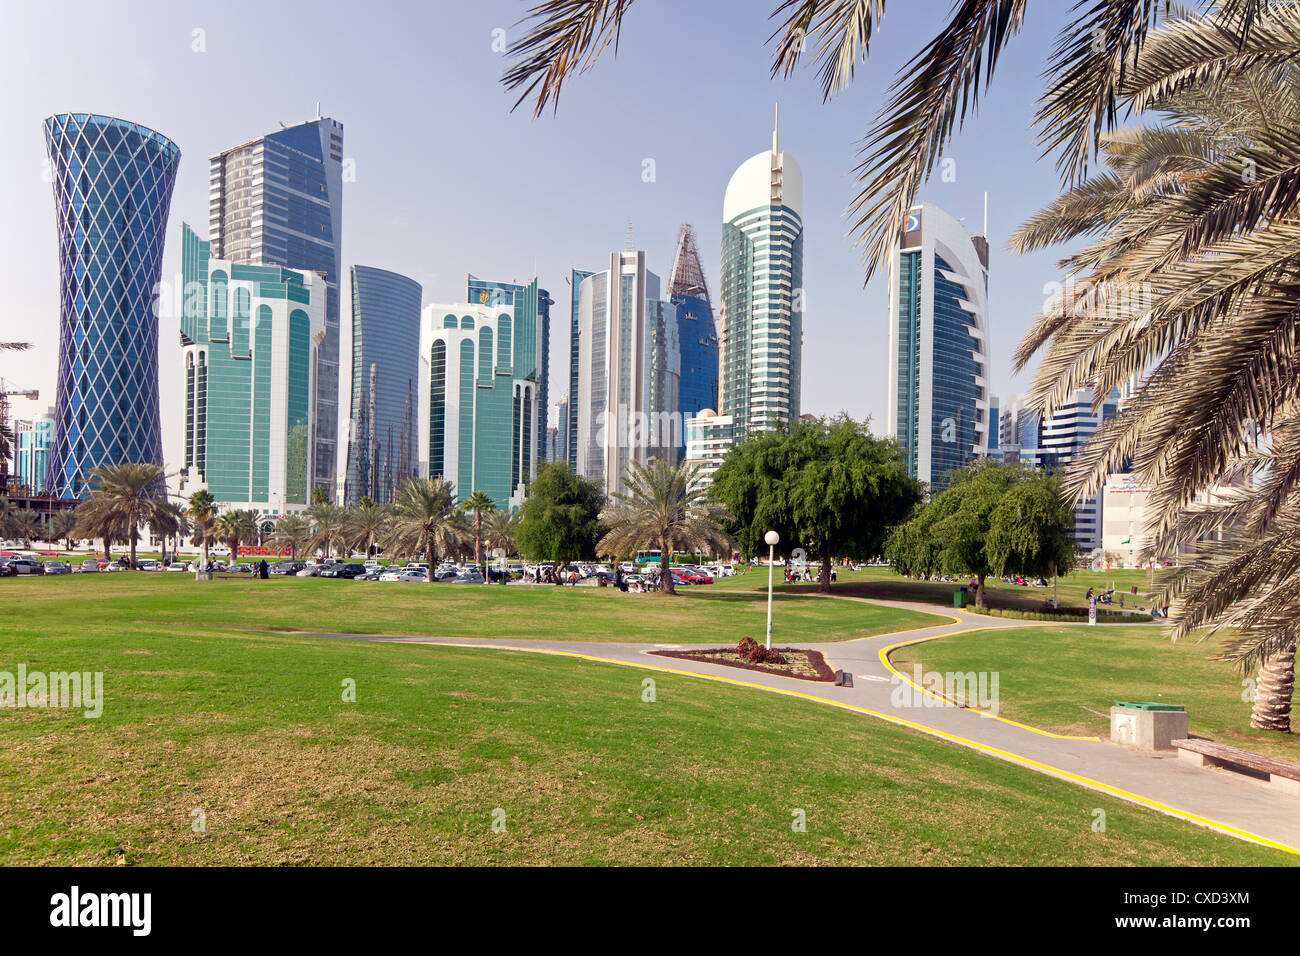 Modern skyline of the West Bay central financial district, Doha, Qatar, Middle East - Stock Image